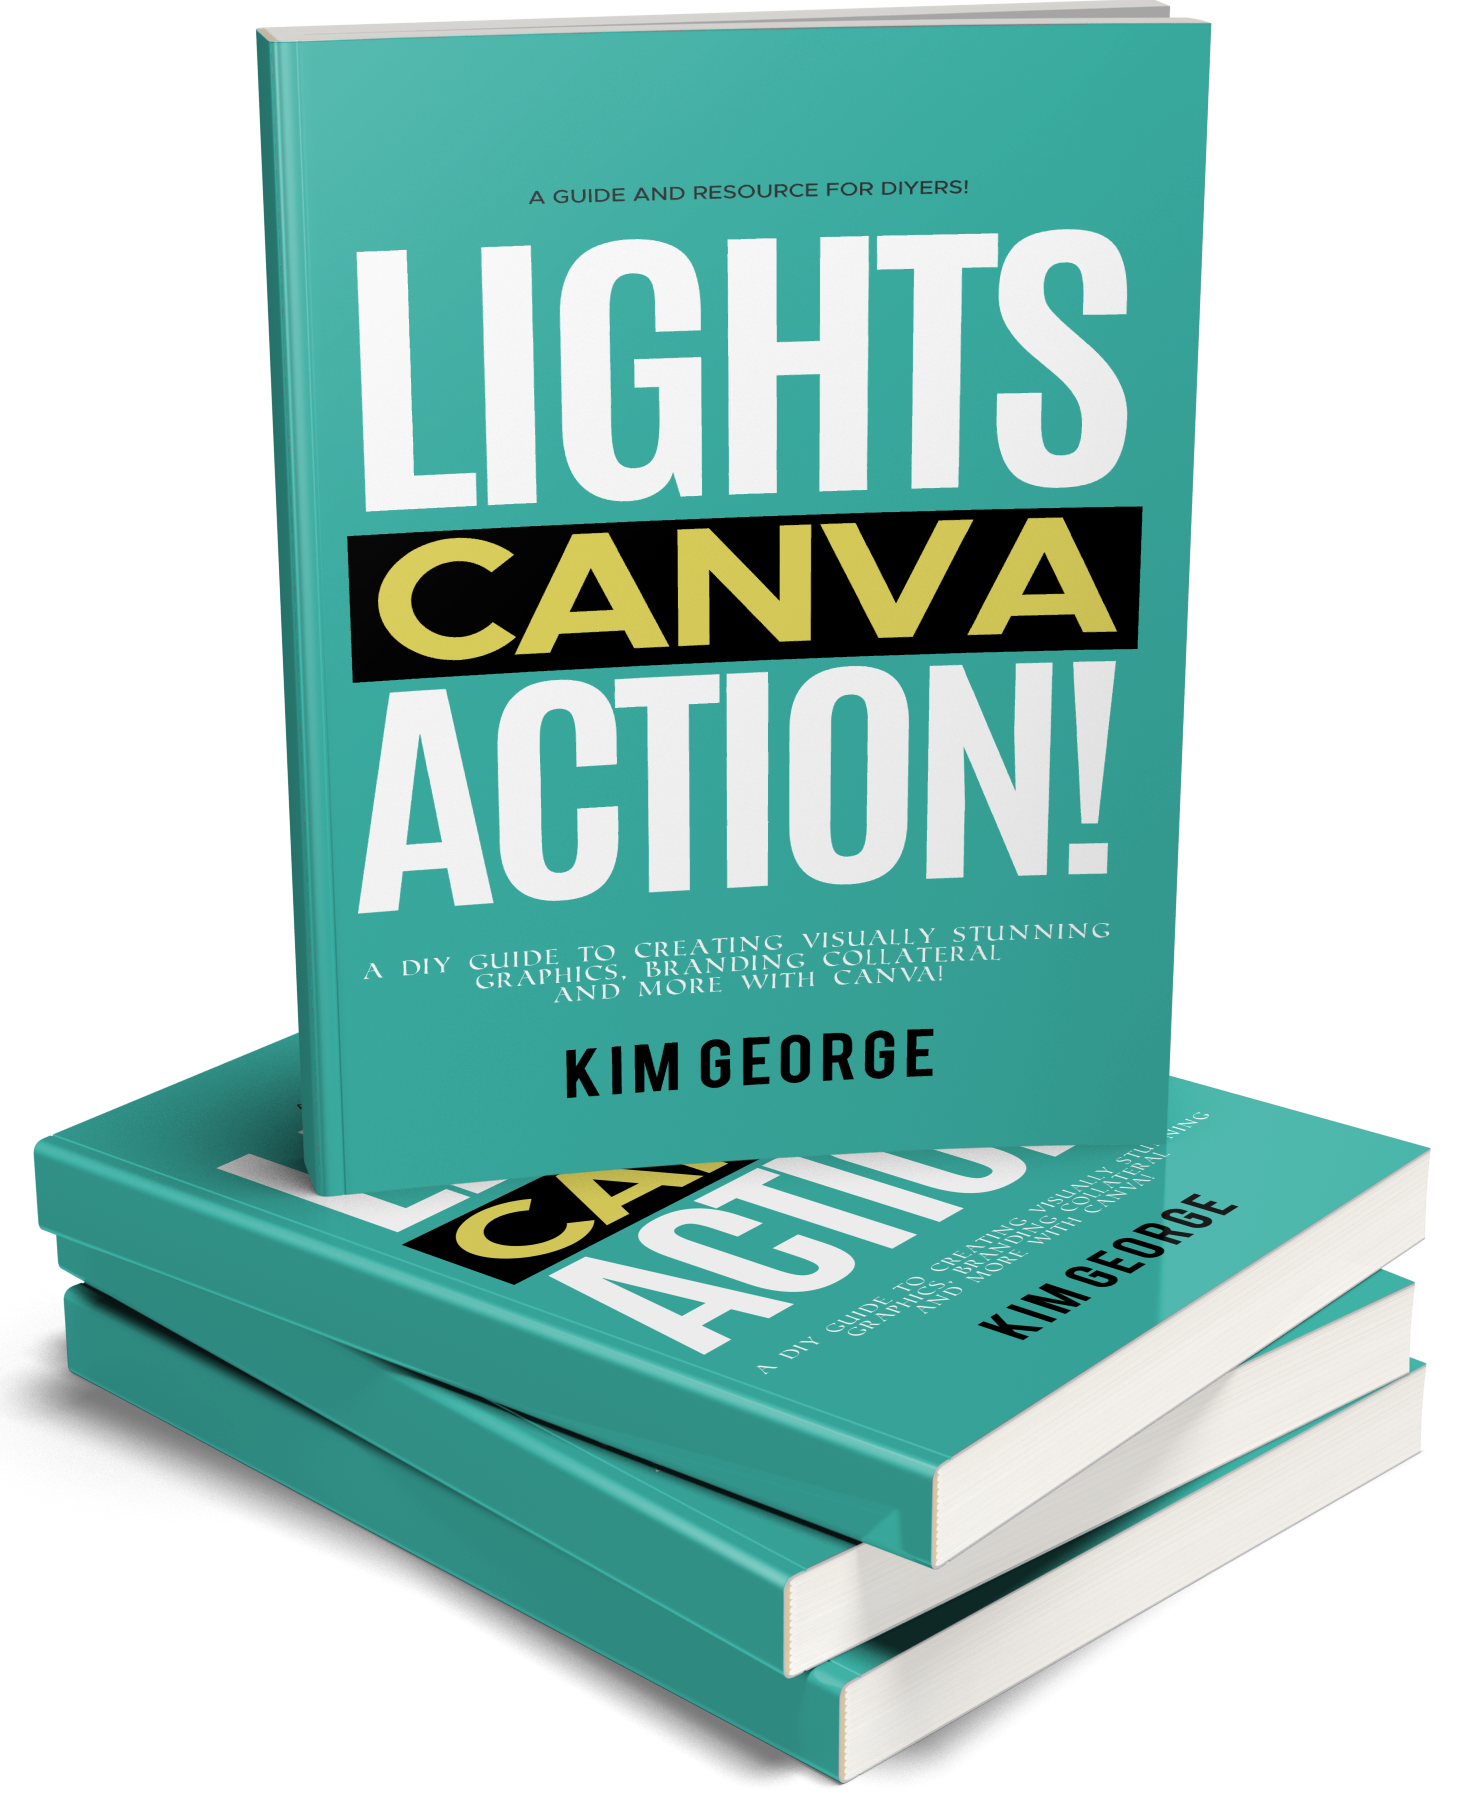 Lights Canva Action eBook